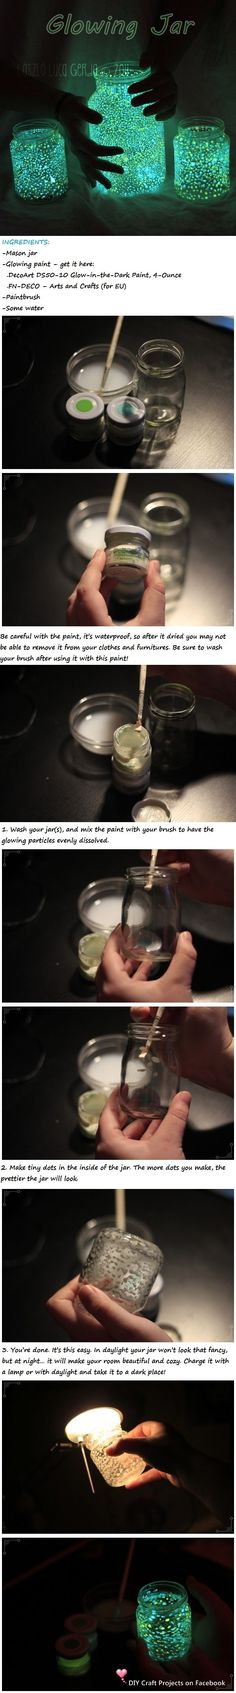 DIY Glowing Jar diy crafts craft ideas easy crafts diy ideas diy idea diy home…